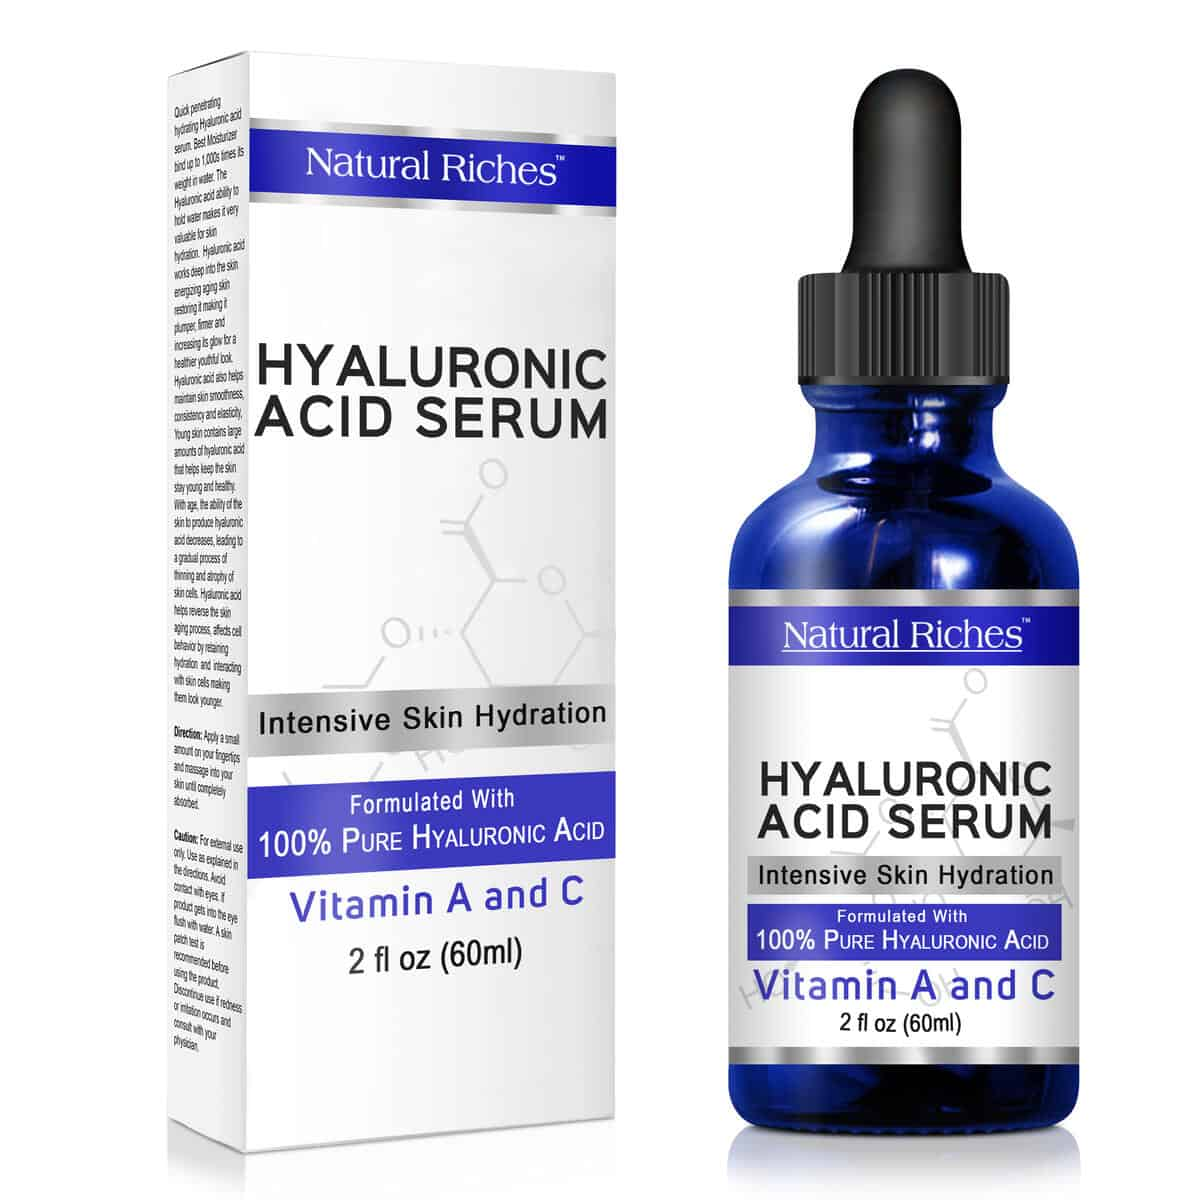 Natural Riches Hyaluronic Acid Serum